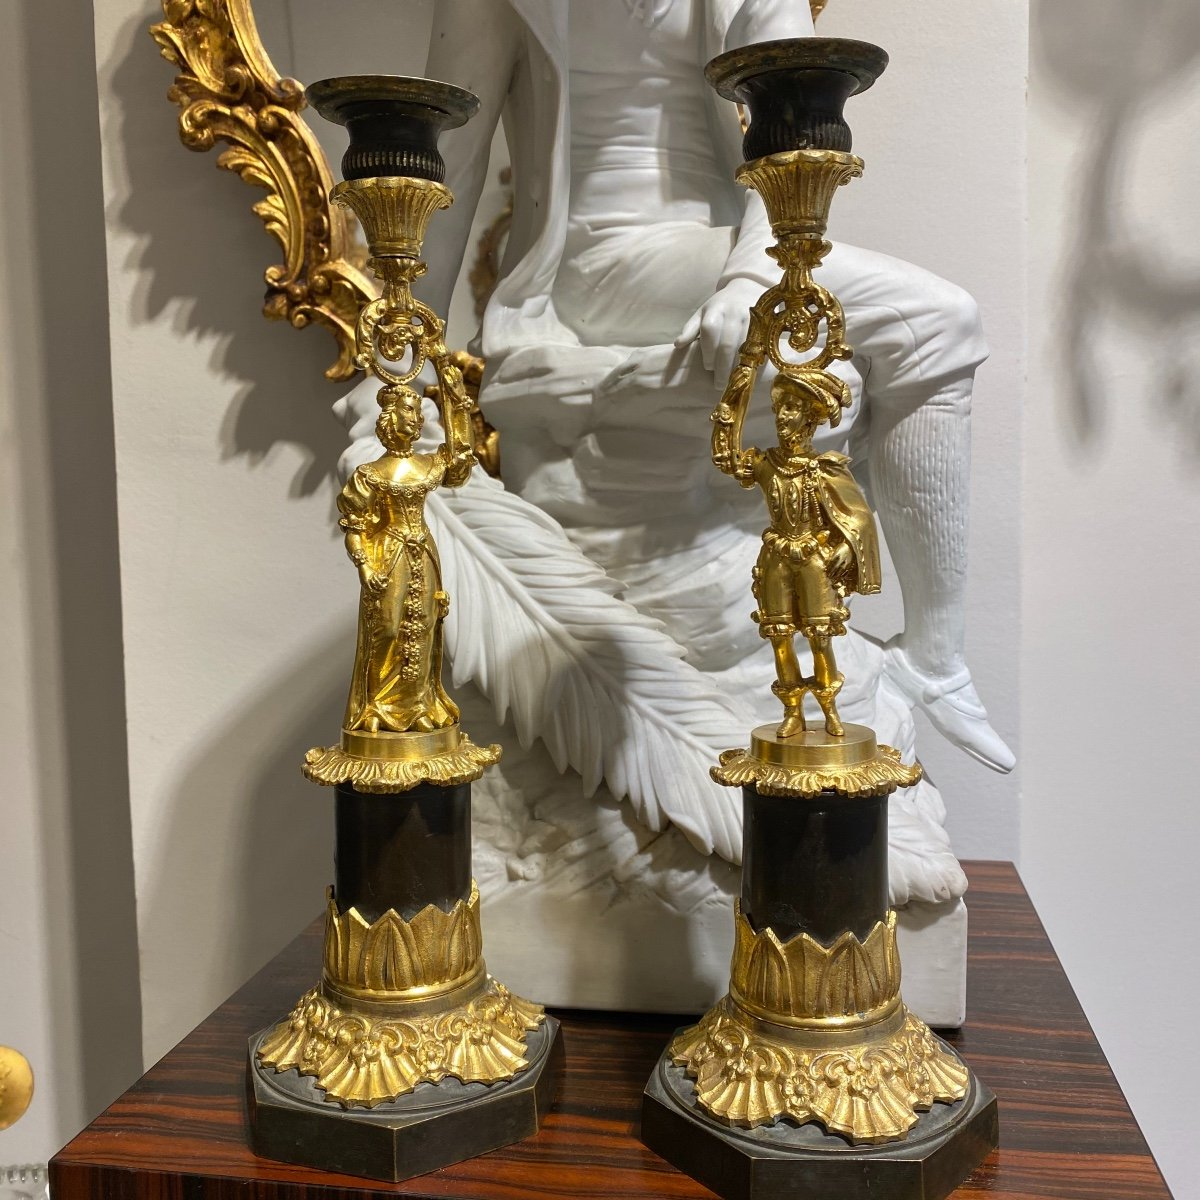 Pair Of Charles X Candlesticks In Gilt Bronze With Mercury Decor From A Couple Early XIXth